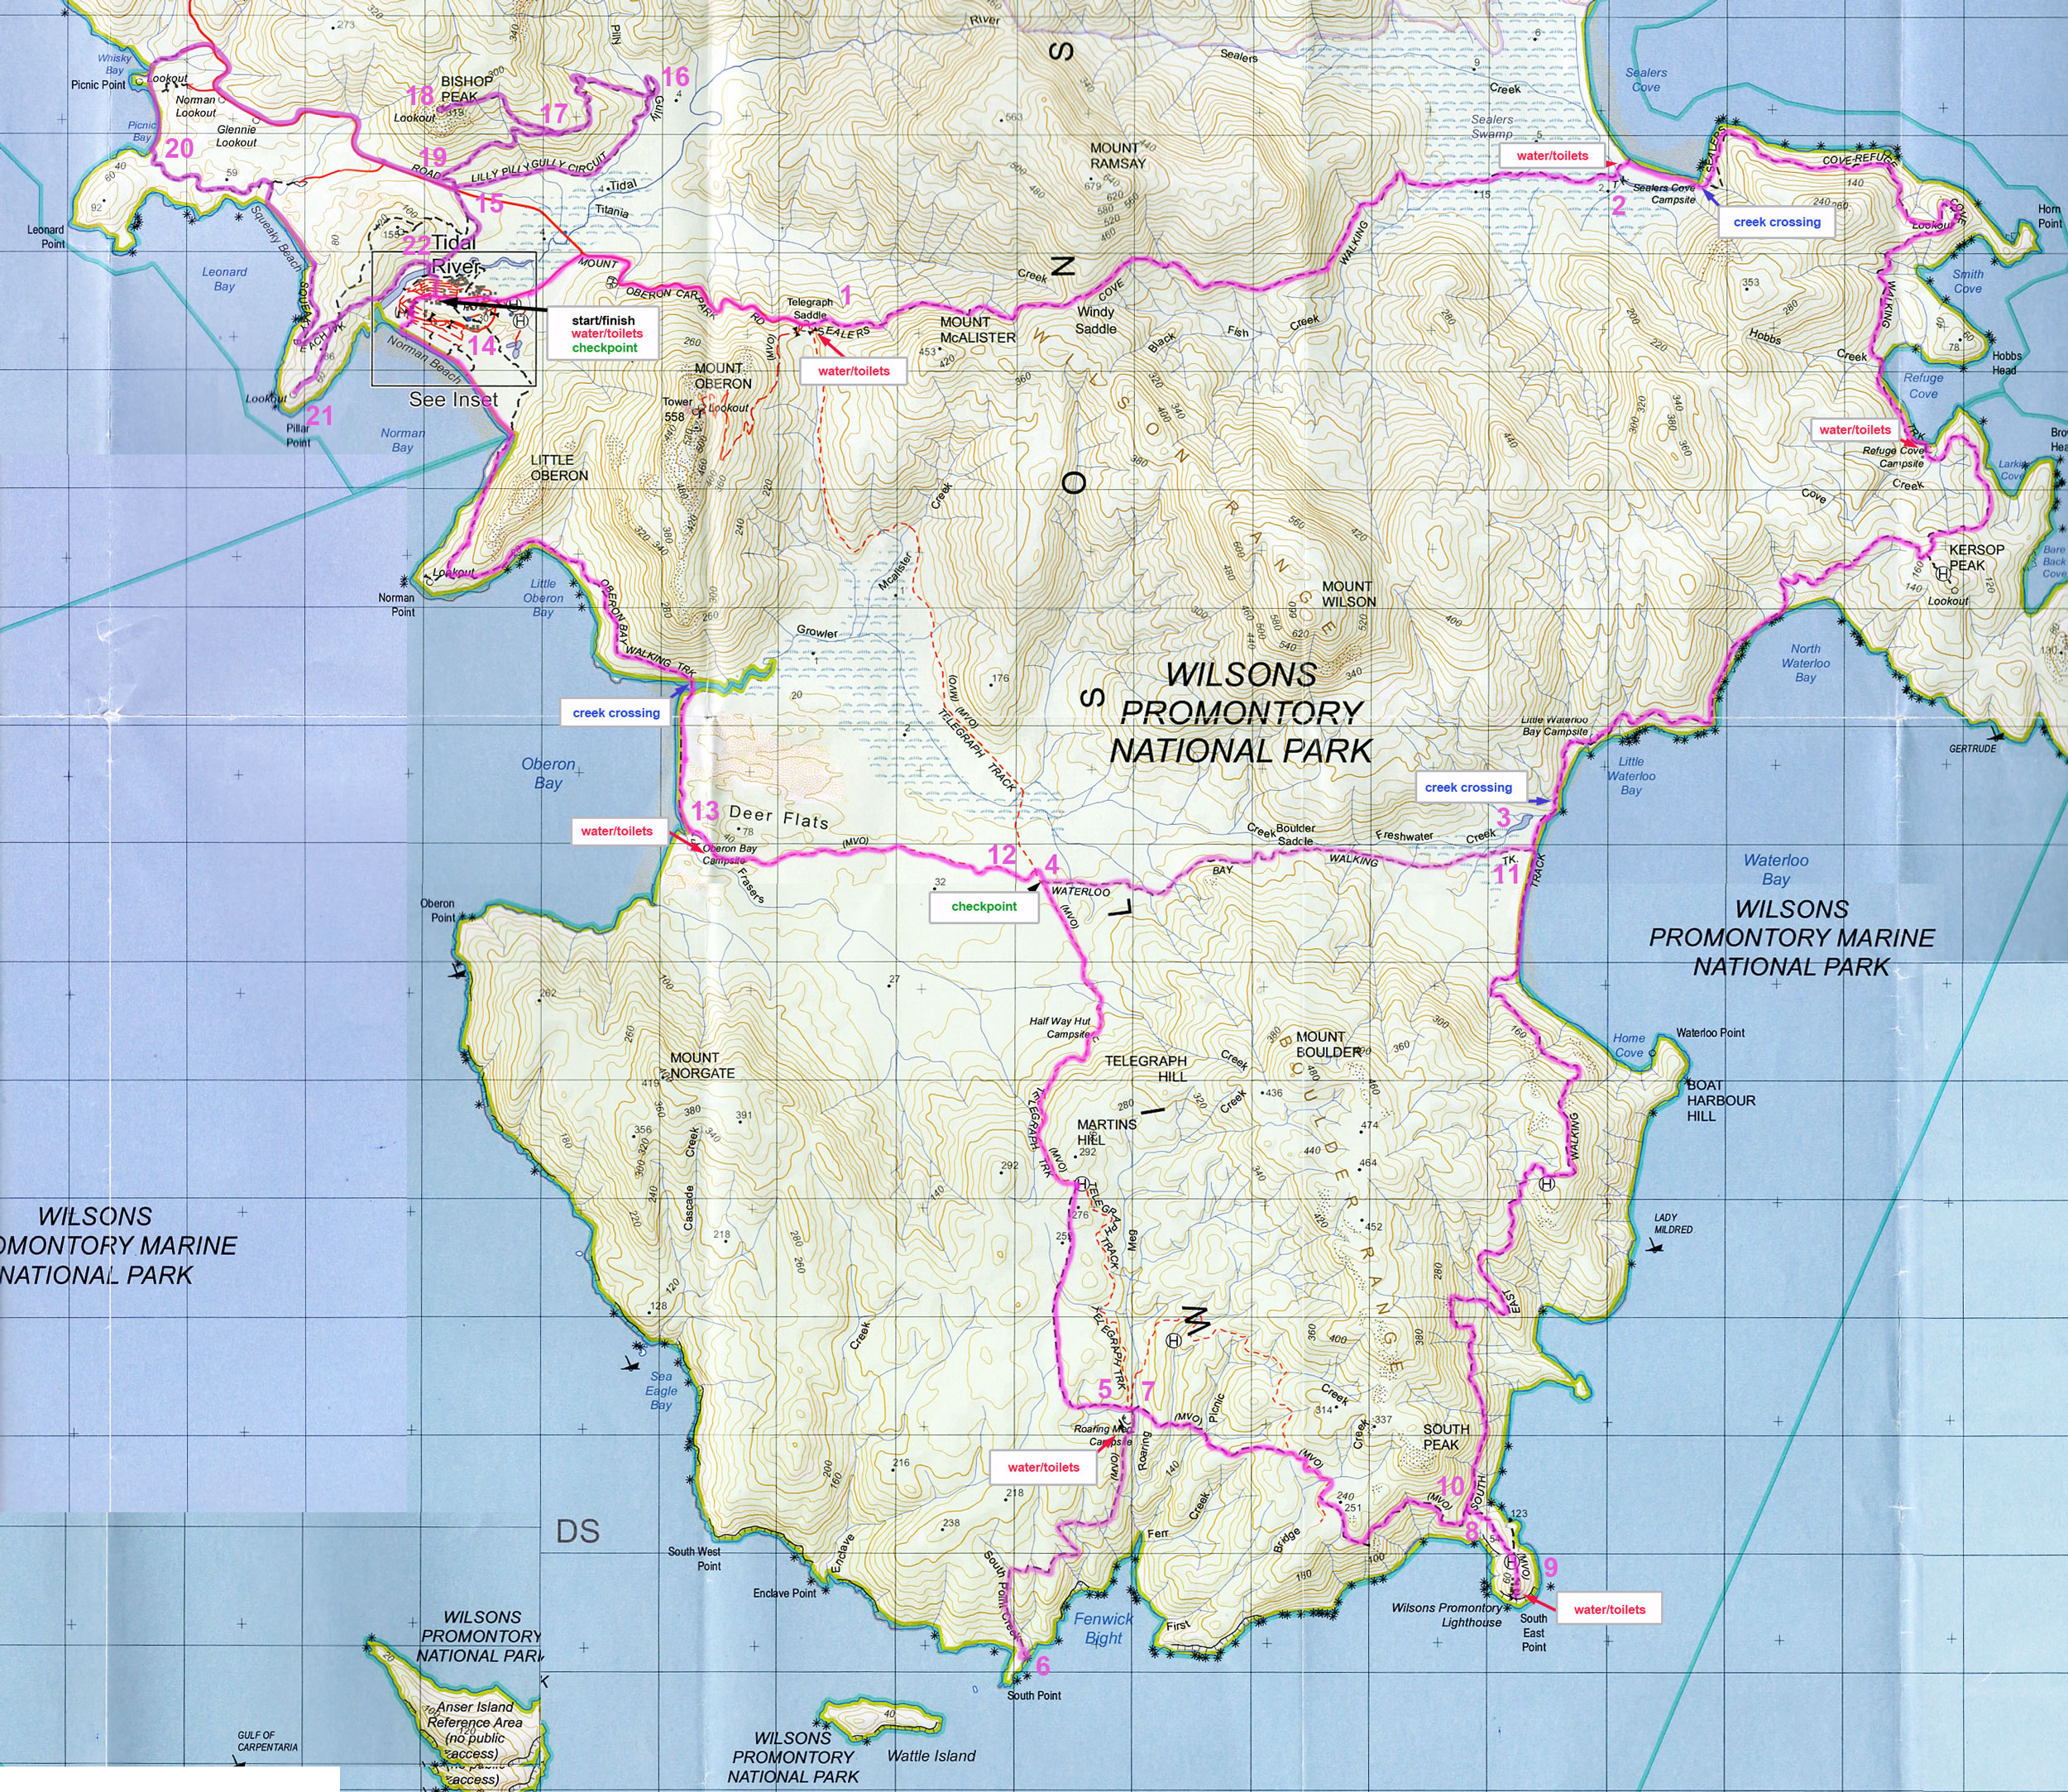 Wilsons Promontory Map Maps Wilsons Promontory Map